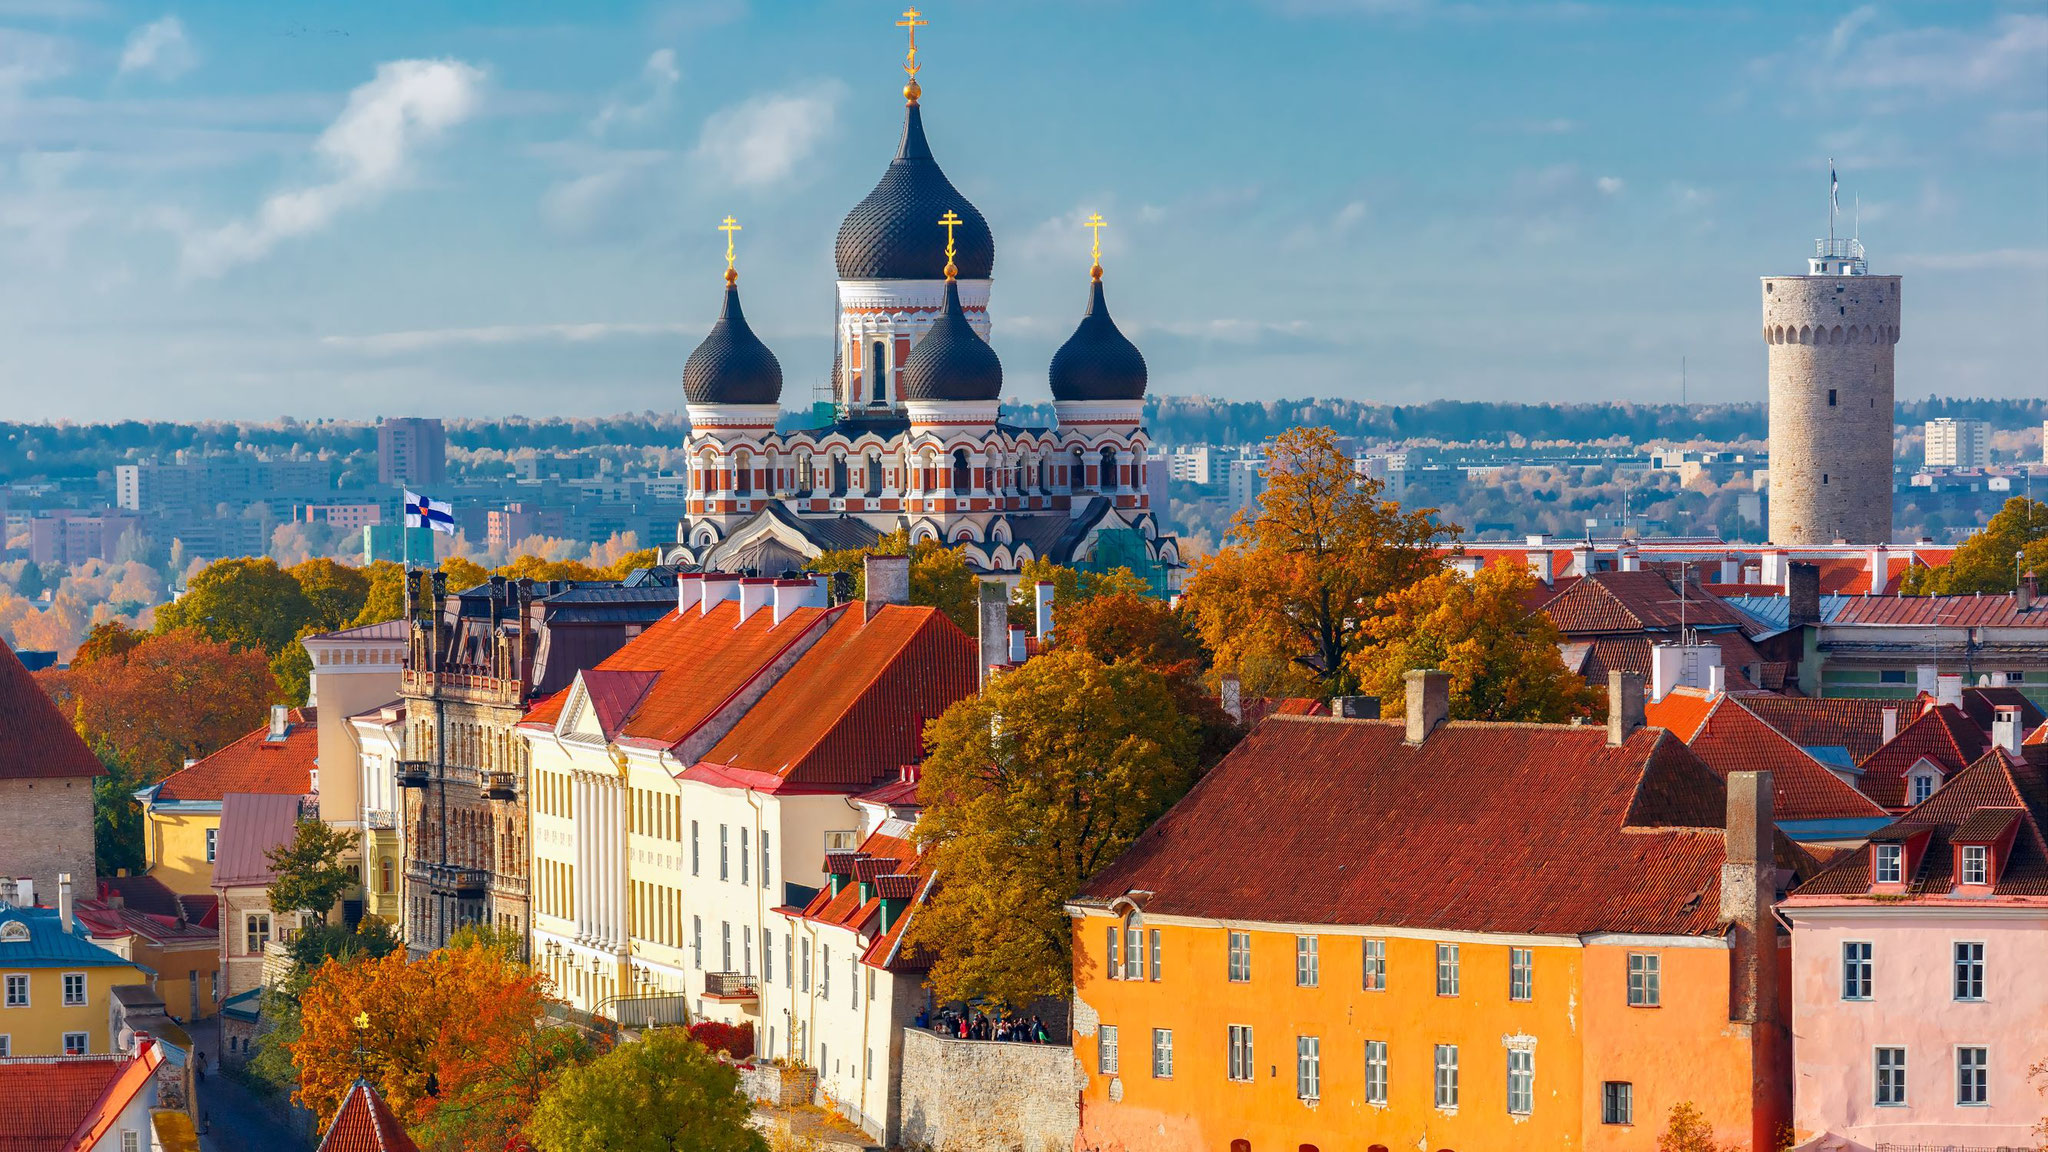 Tallinn, the Alexander Nevsky Cathedral